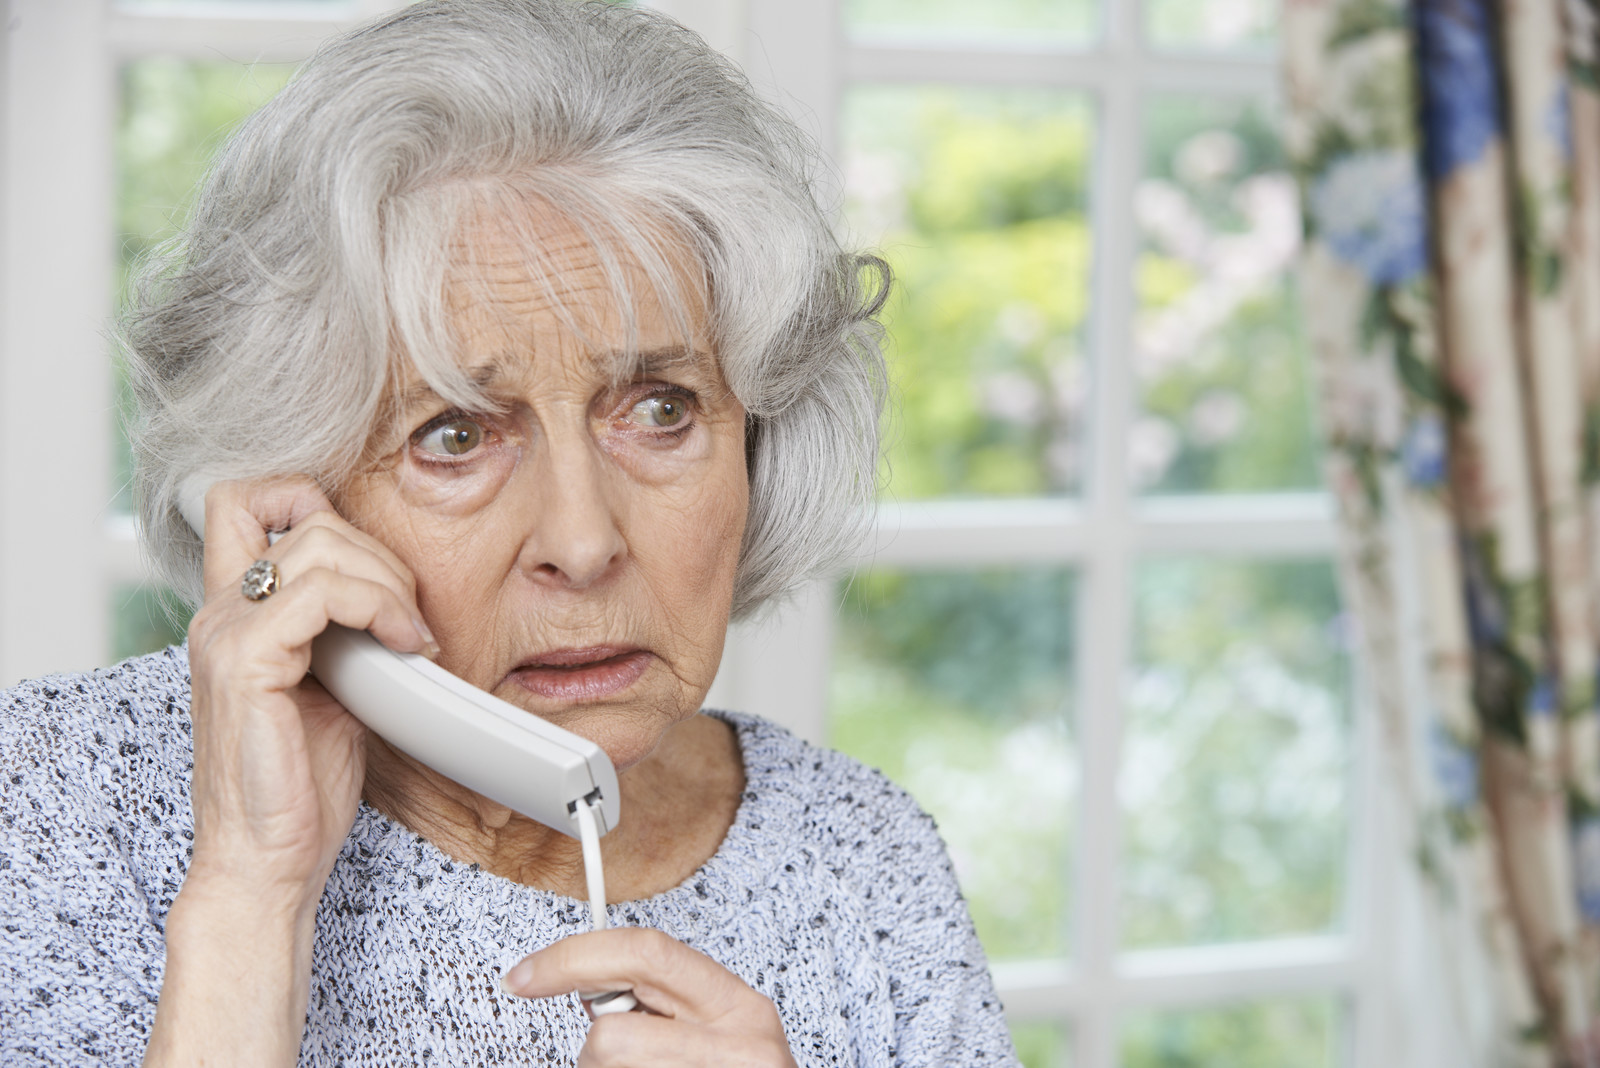 Scared senior woman on the phone - supposed to imitate the feelings of fear when an IRS scammer is threatening her